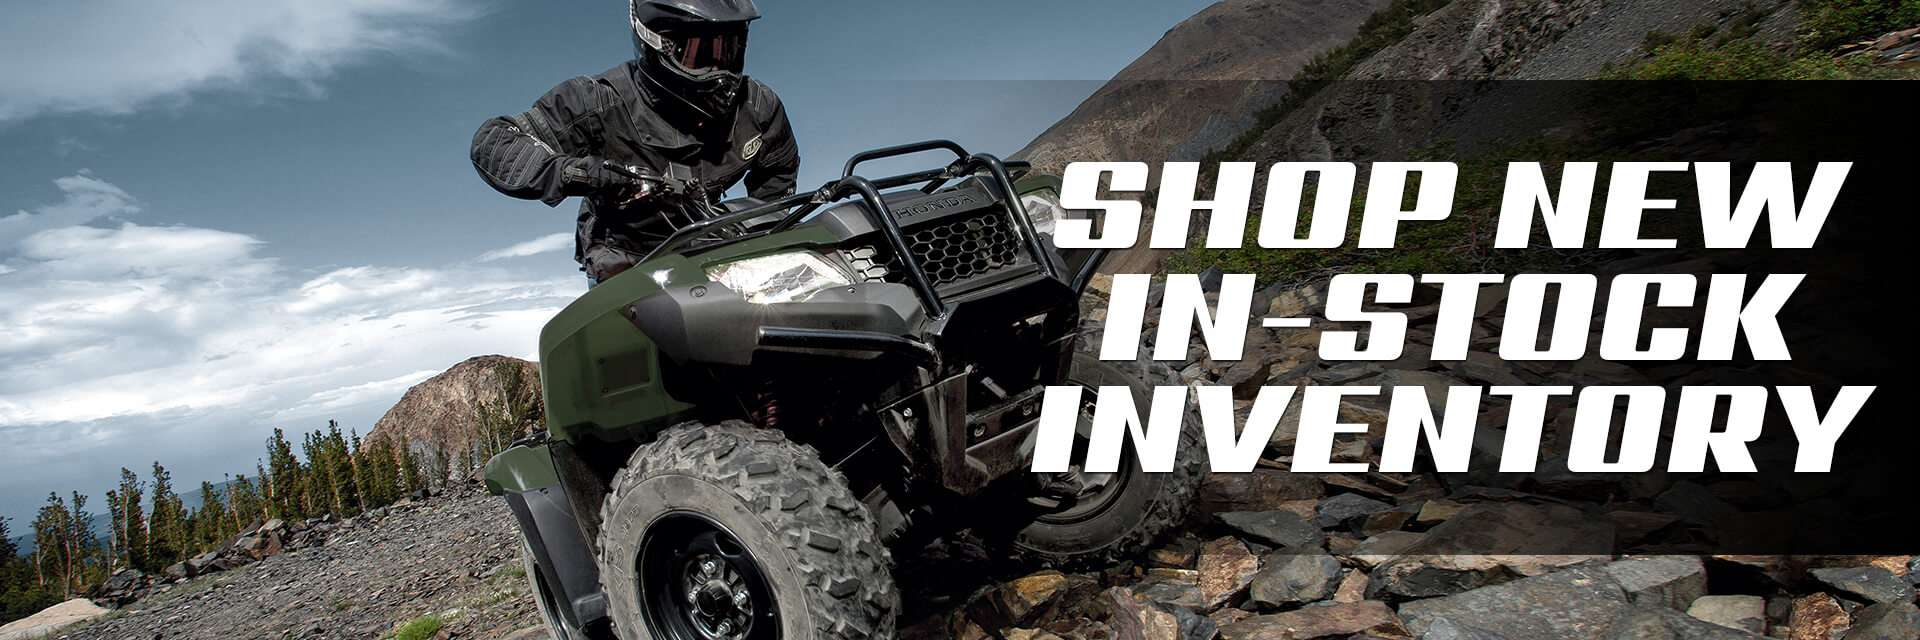 Shop New In-Stock Inventory at Beckley Honda